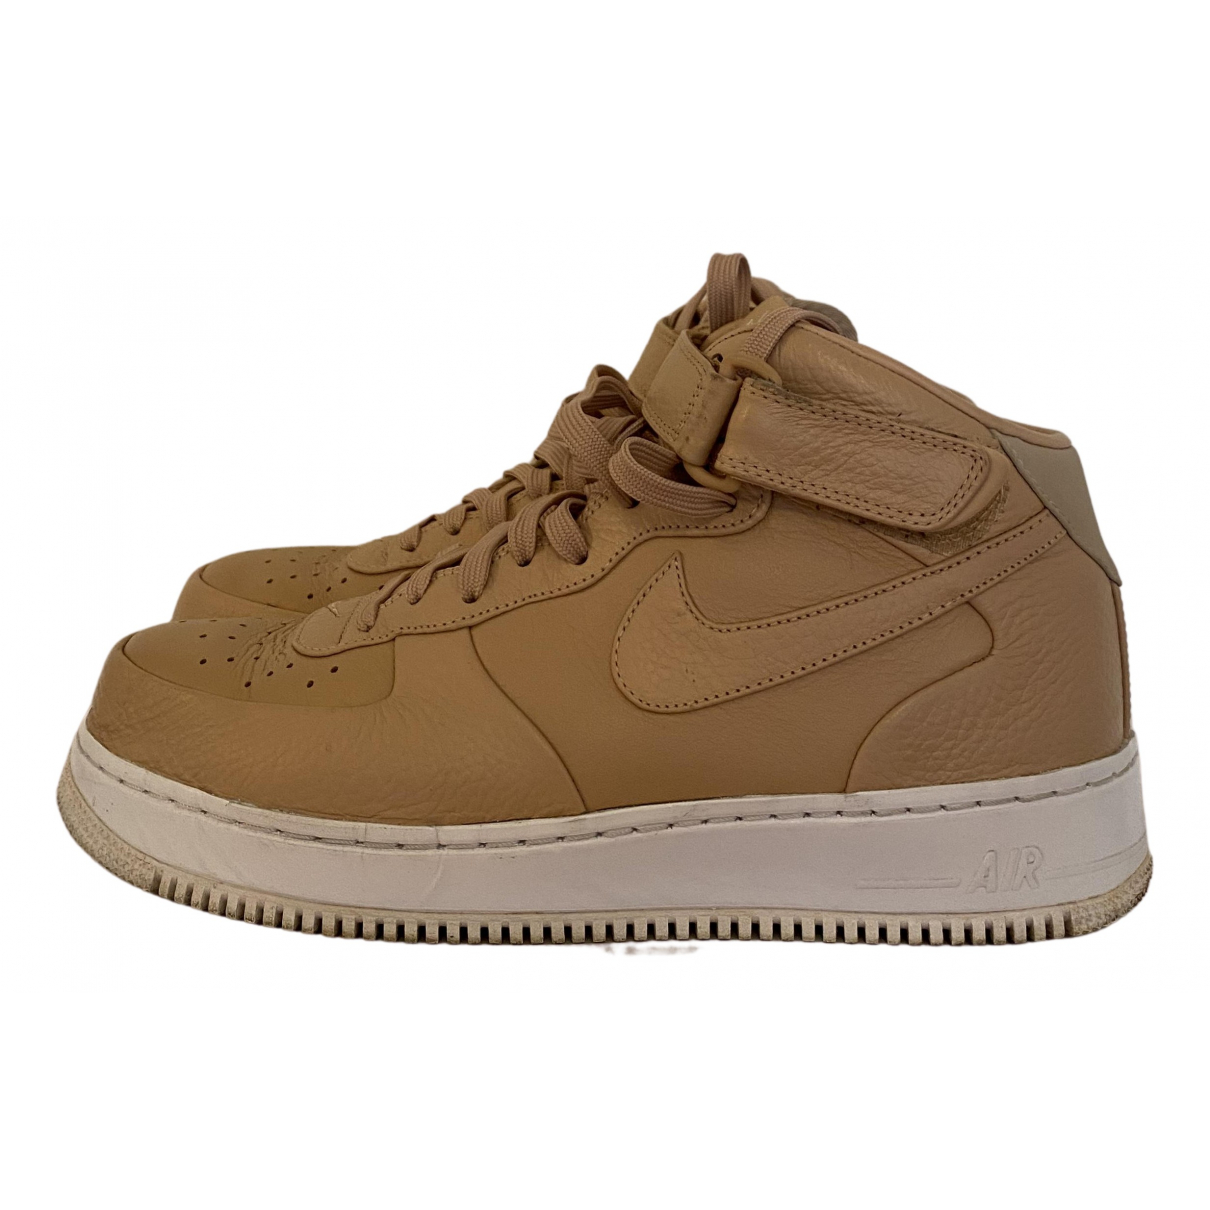 Nike Air Force 1 Khaki Leather Trainers for Men 10 US